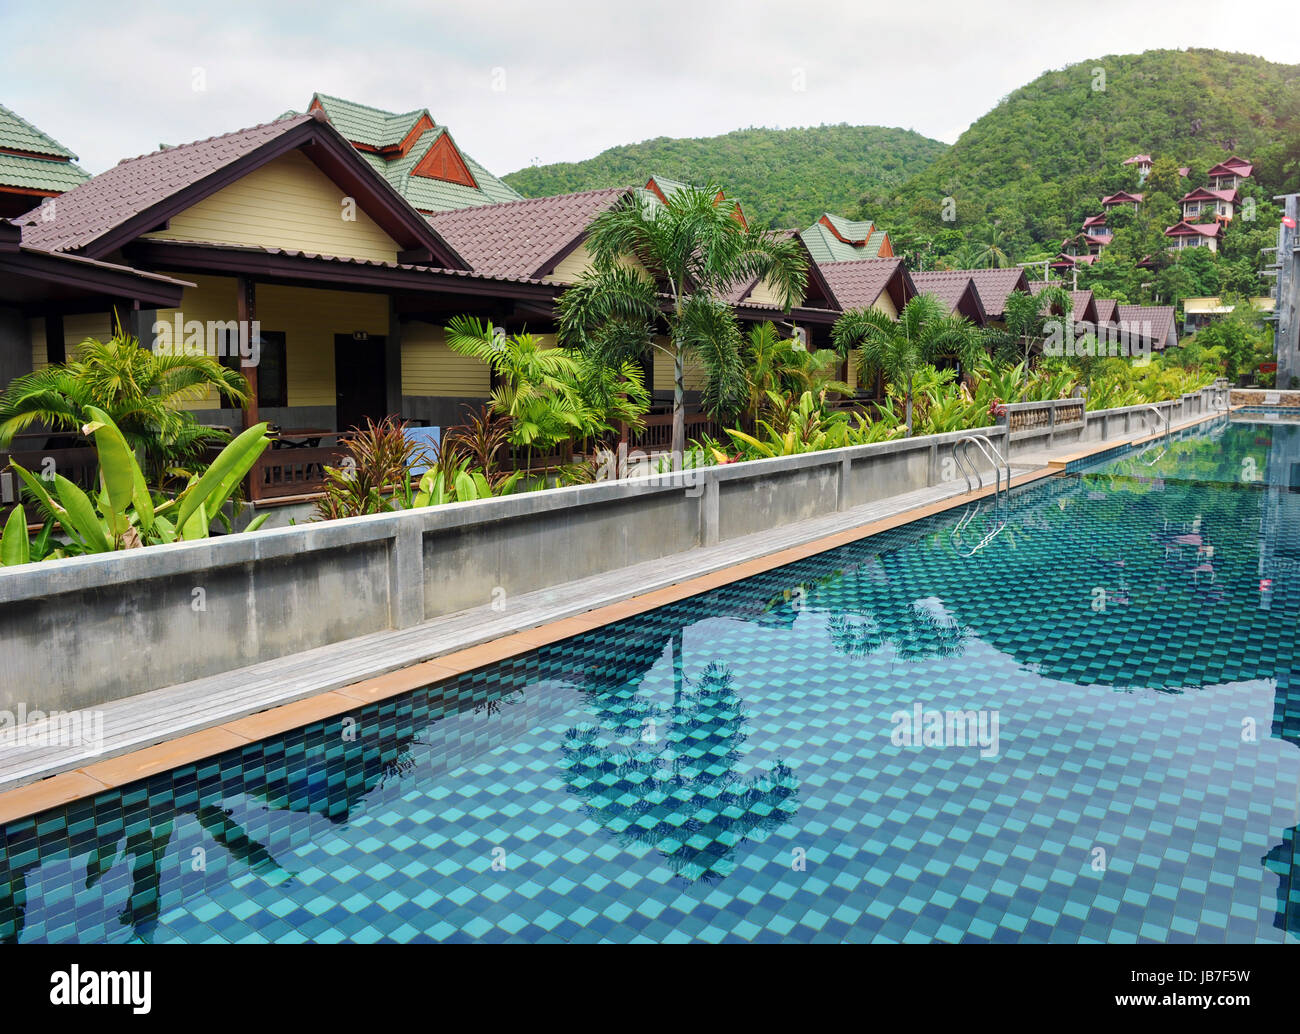 Swimming pool at the luxury hotel, Phangan, Thailand - Stock Image